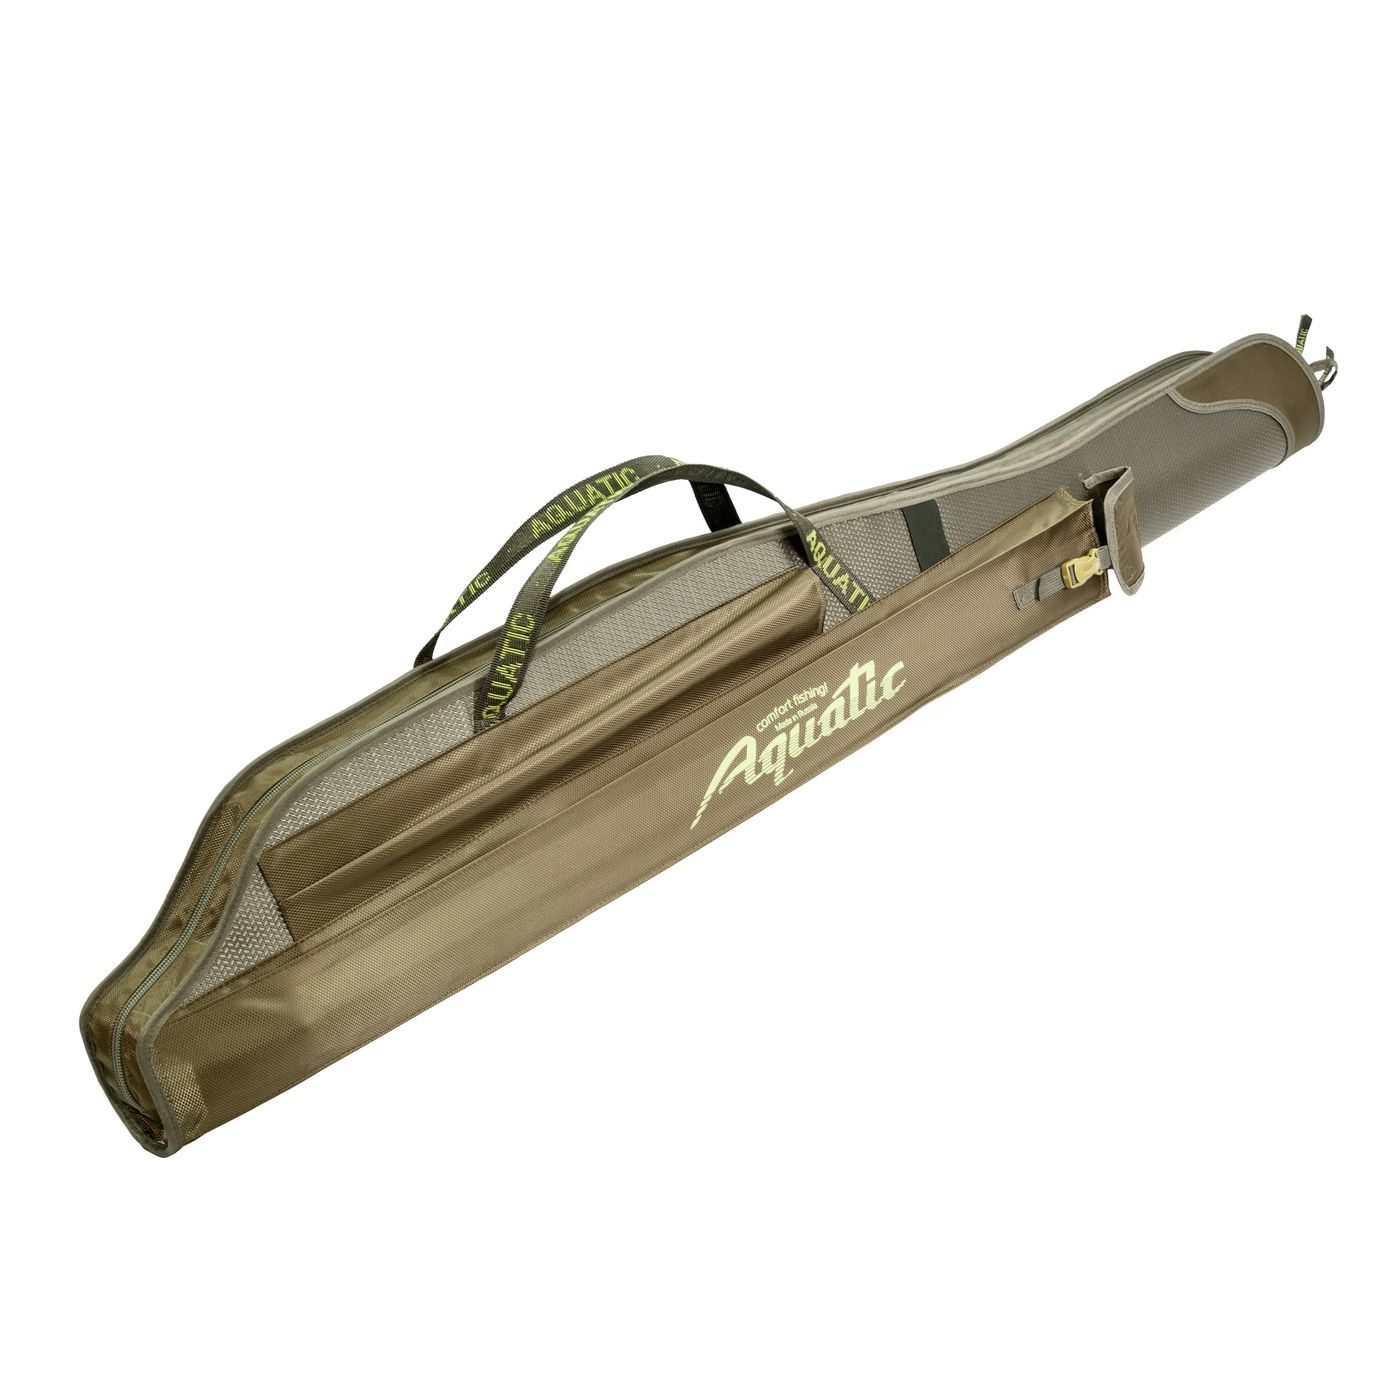 Soft Case For Fishing Rods Aquatic H-01 (130 Cm) H-01 130